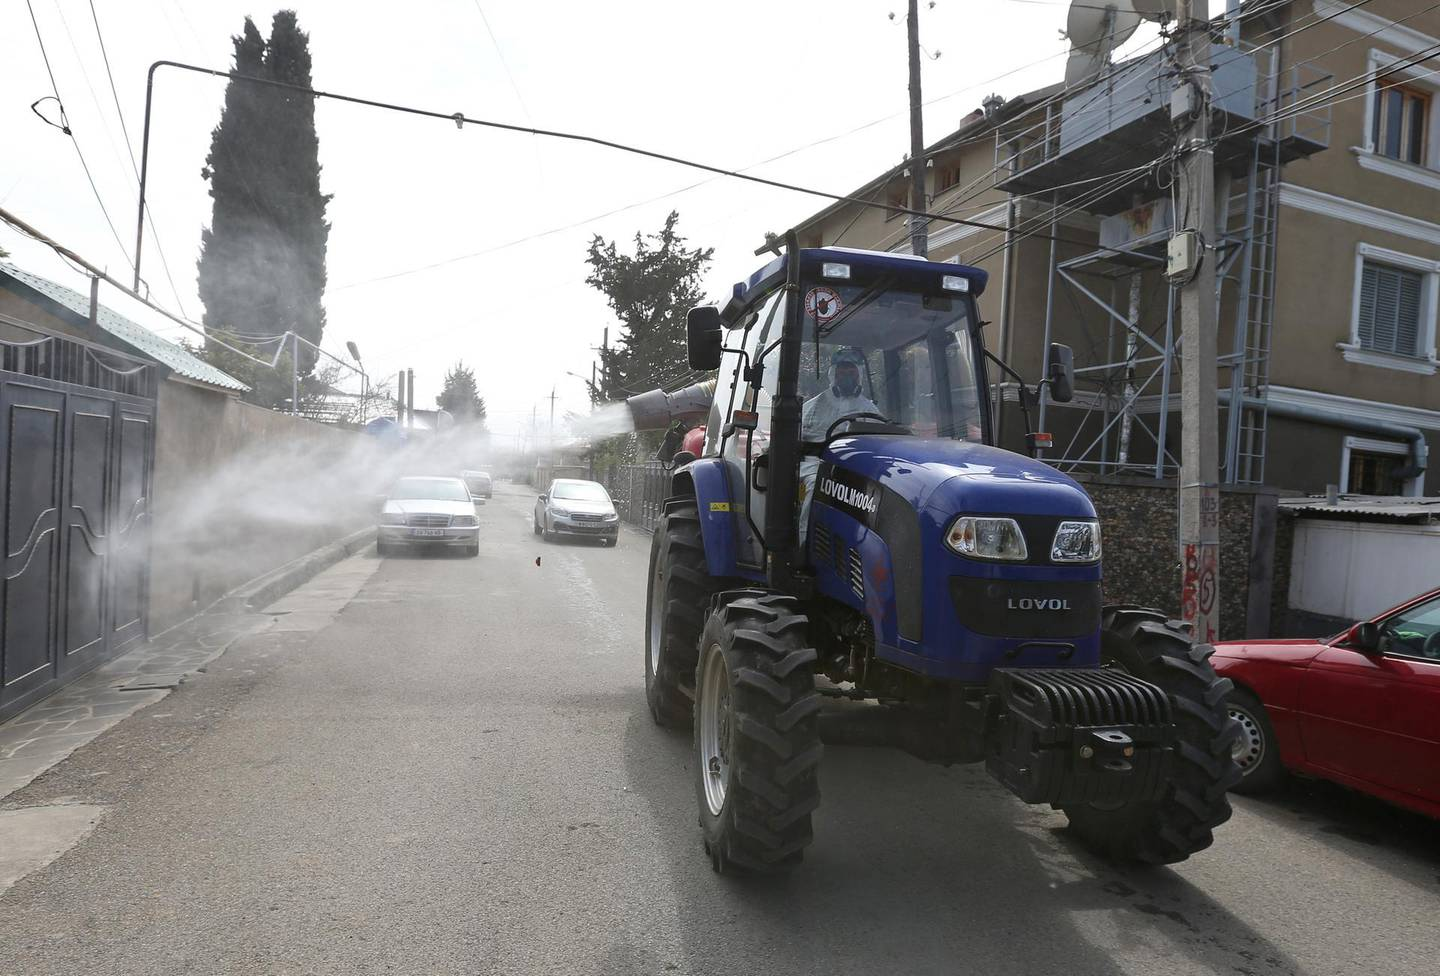 A tractor driven by a worker wearing a protective suit sprays disinfectant on the street to prevent the spread of coronavirus disease (COVID-19), in Marneuli near Tbilisi, Georgia March 25, 2020. REUTERS/Irakli Gedenidze